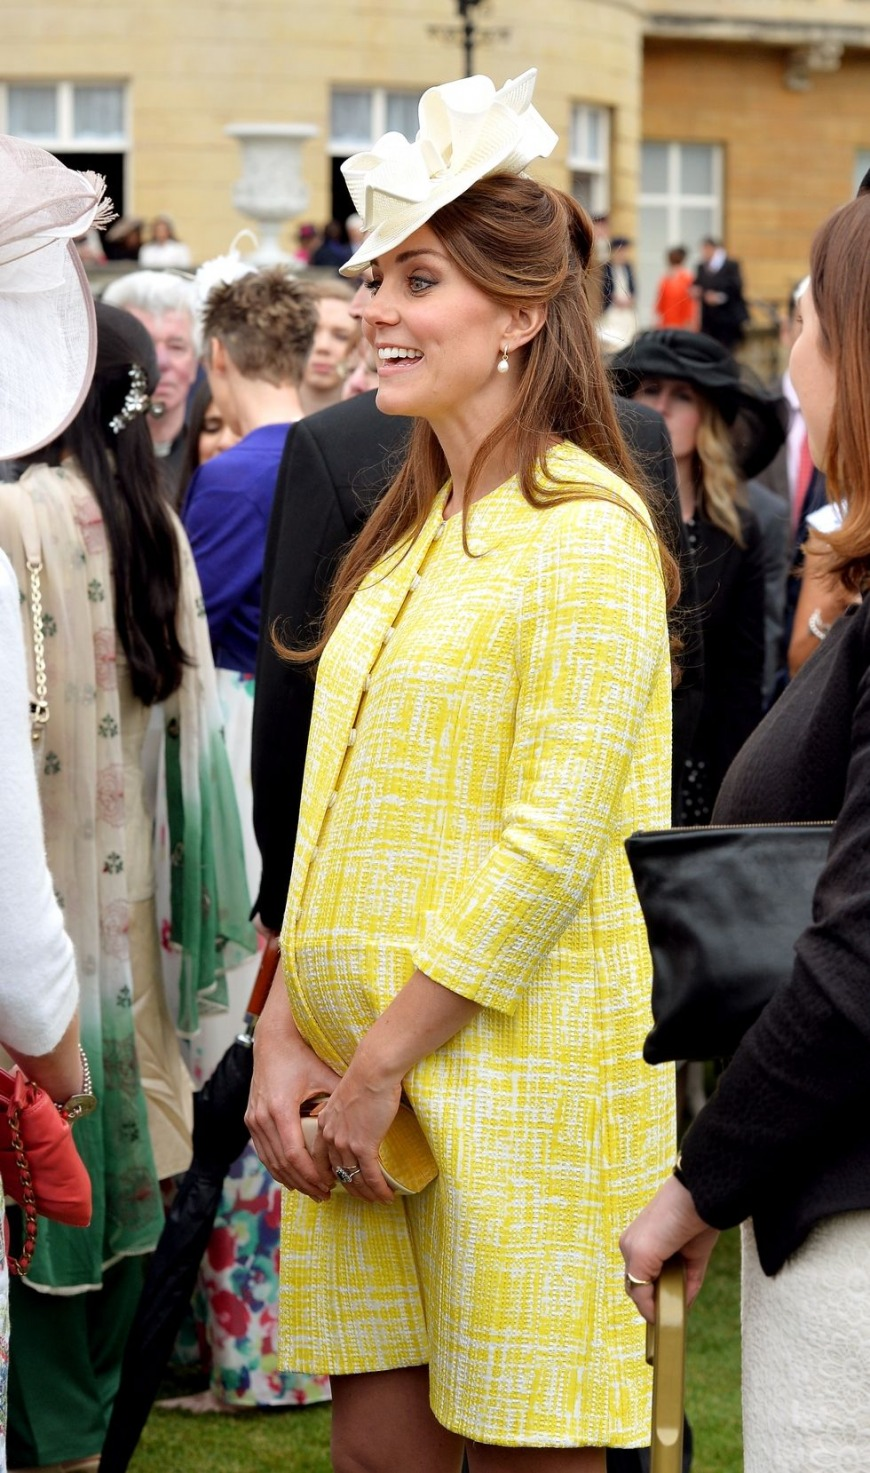 Kate wore this festive yellow frock to a garden party at Buckingham, and it's definitely her colour!